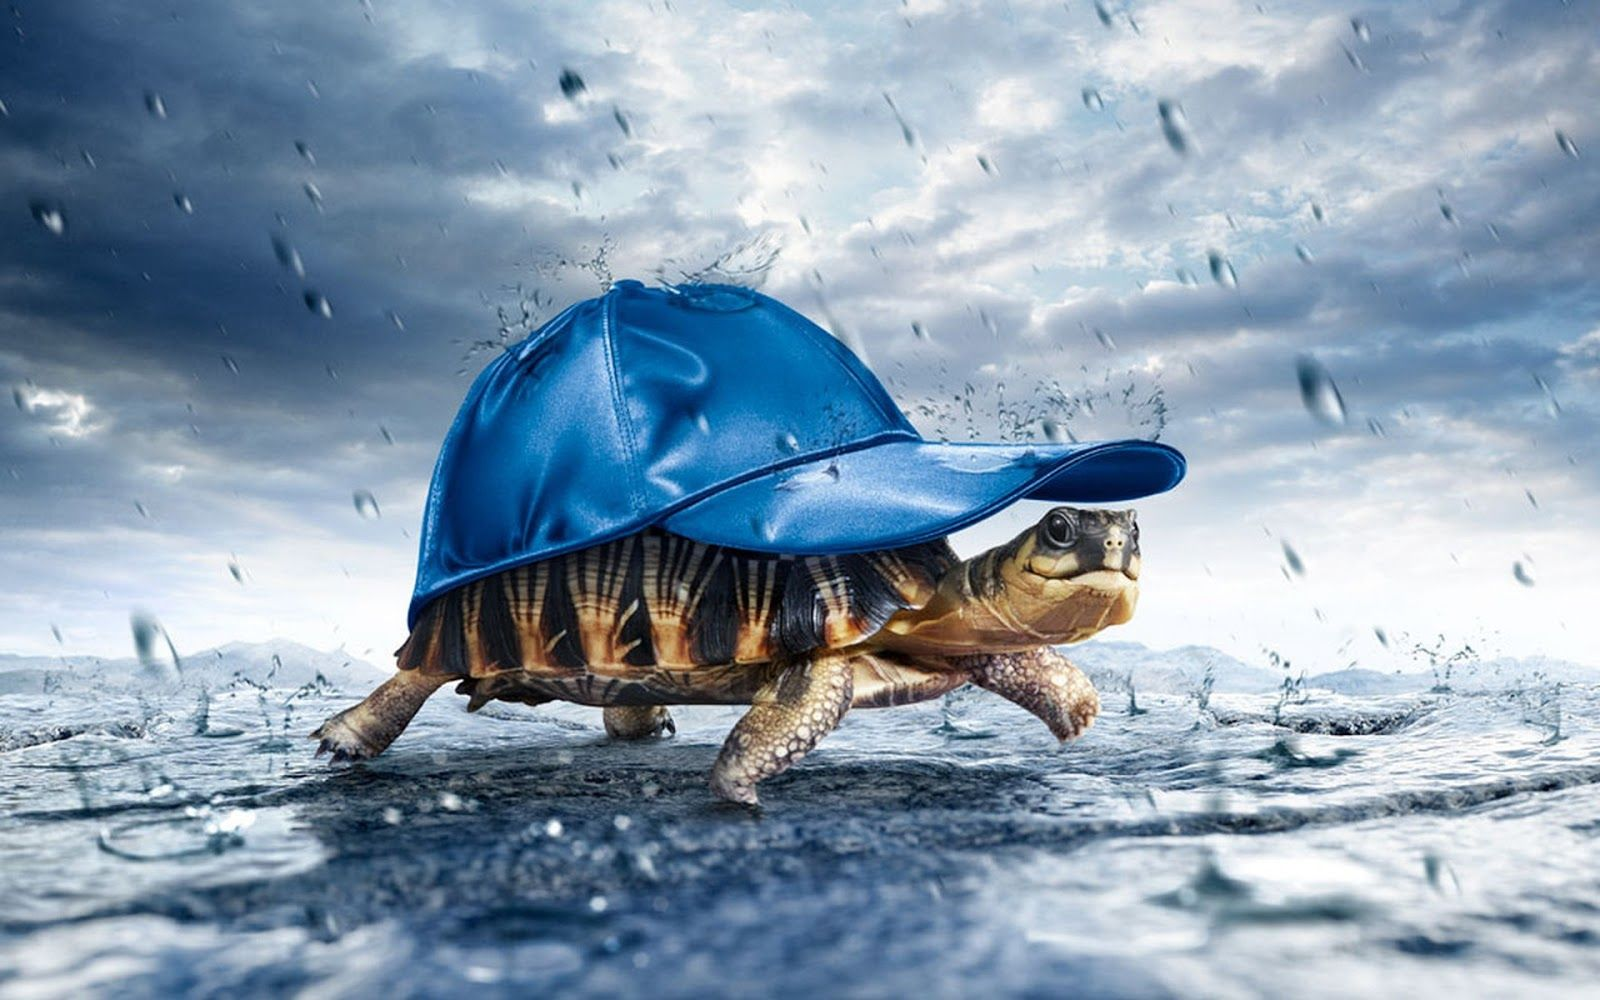 Enjoyable Rainy Day Sms Shayaries Barish Funny Quotes Messages Turtles Funny Turtle Wallpaper Happy Turtle